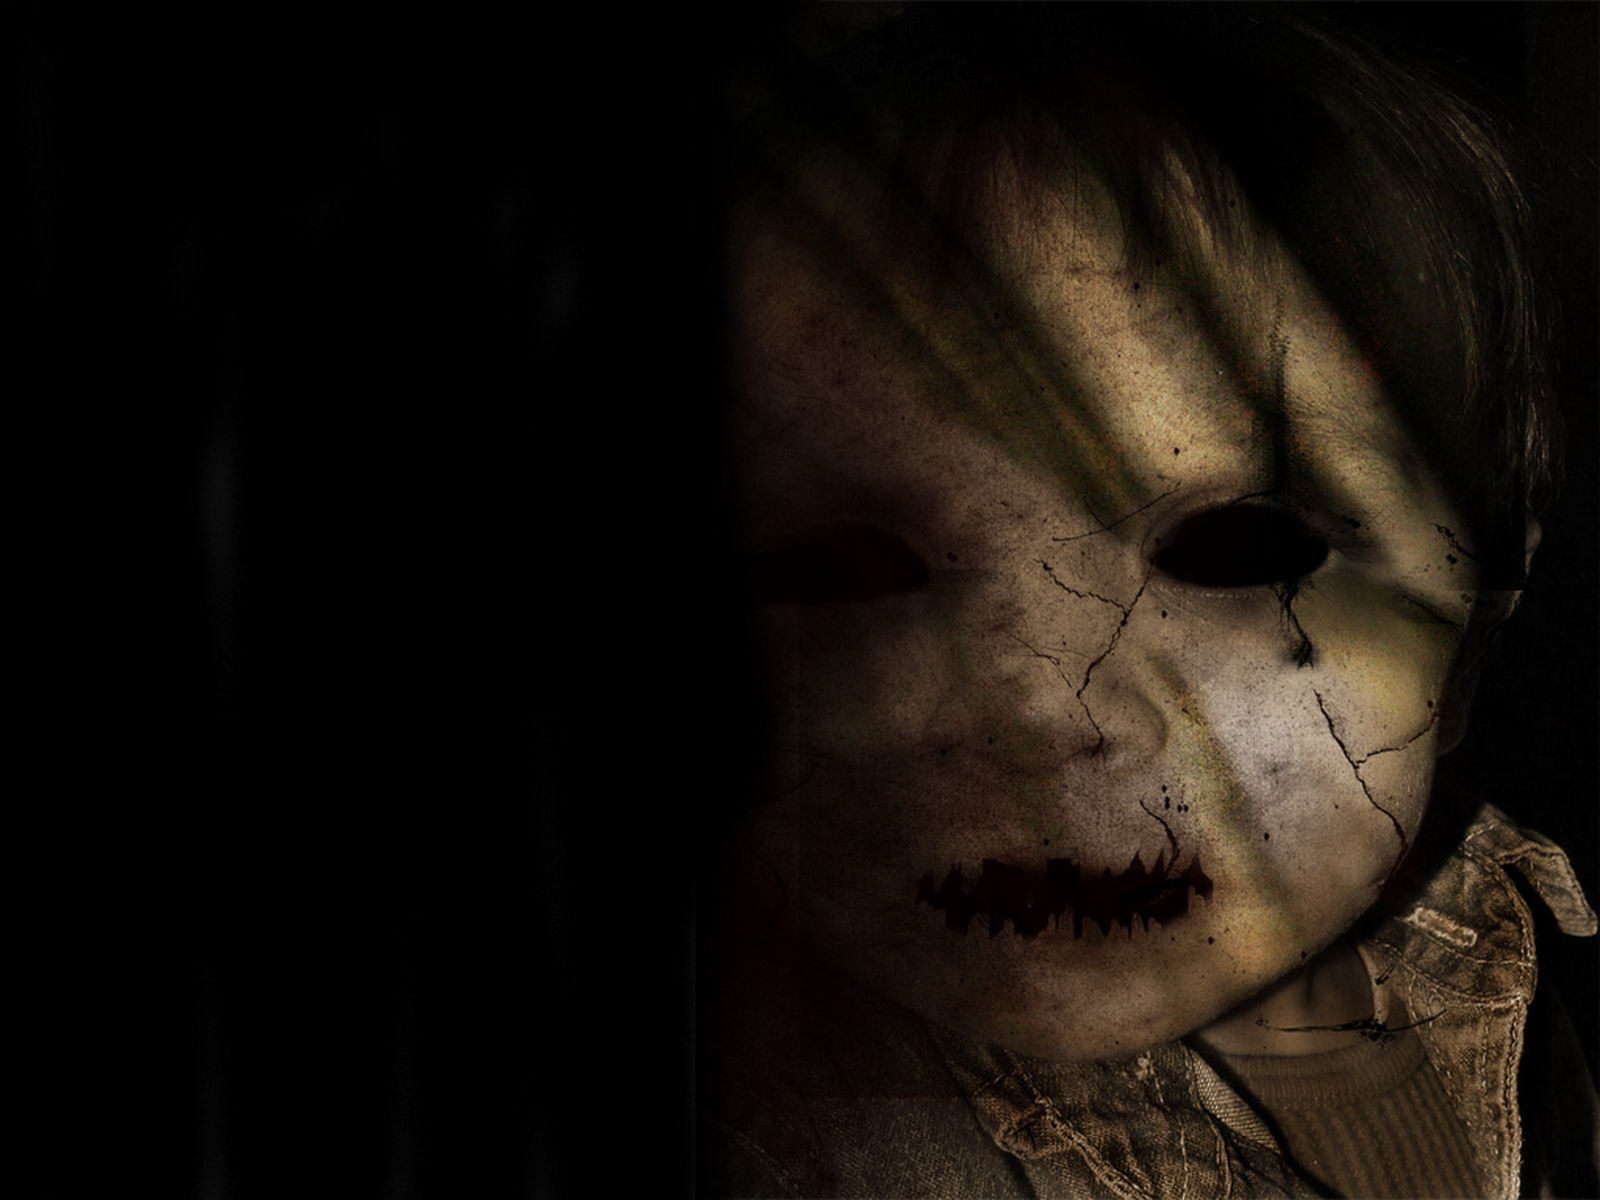 Crazy Horror Wallpapers Top Free Crazy Horror Backgrounds